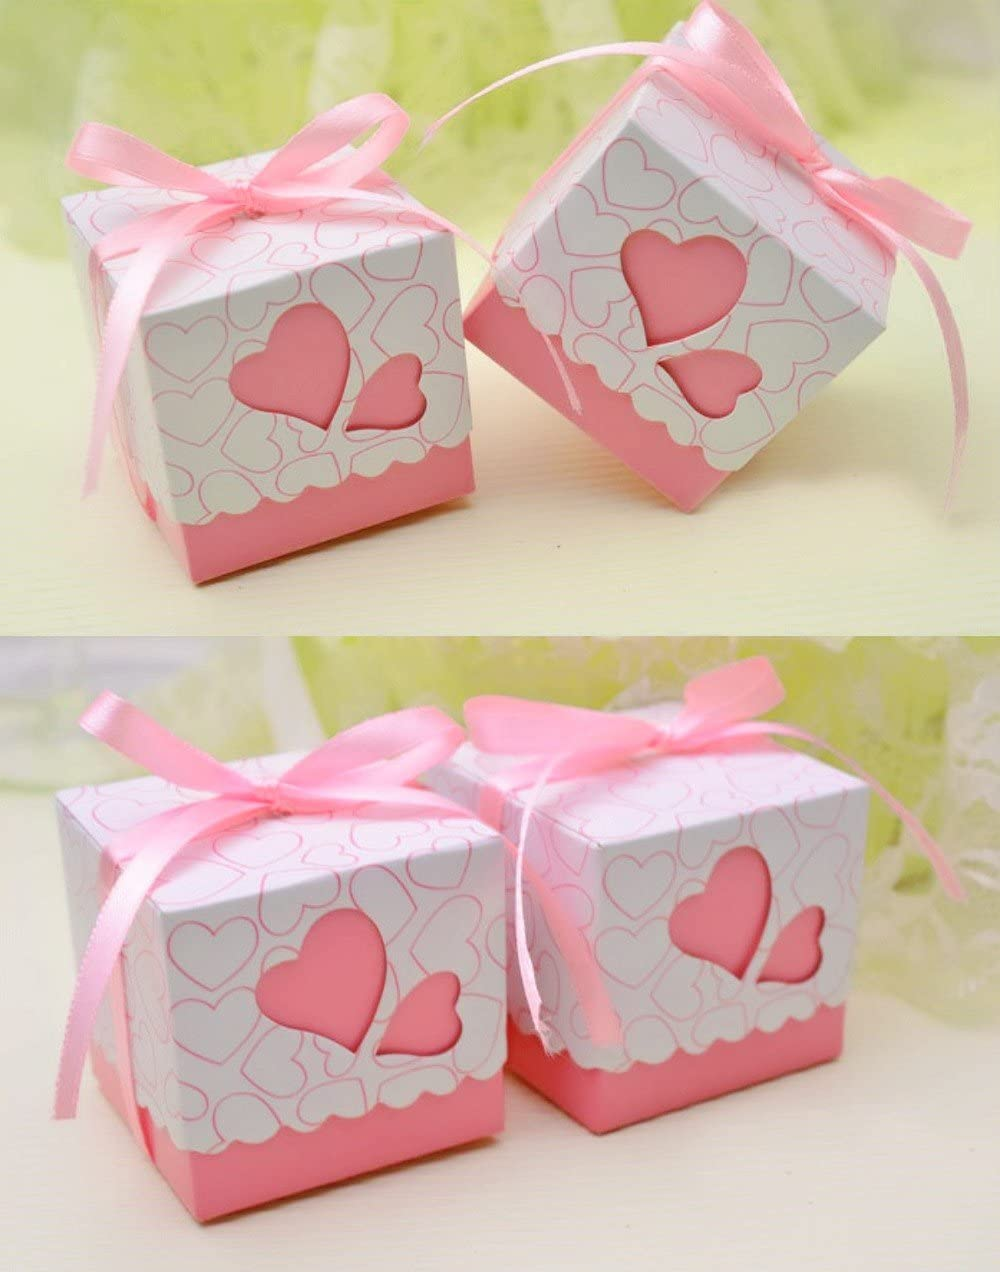 50 Peach Acrylic Heart Embellishments Craft Shower Christening Favours Cards